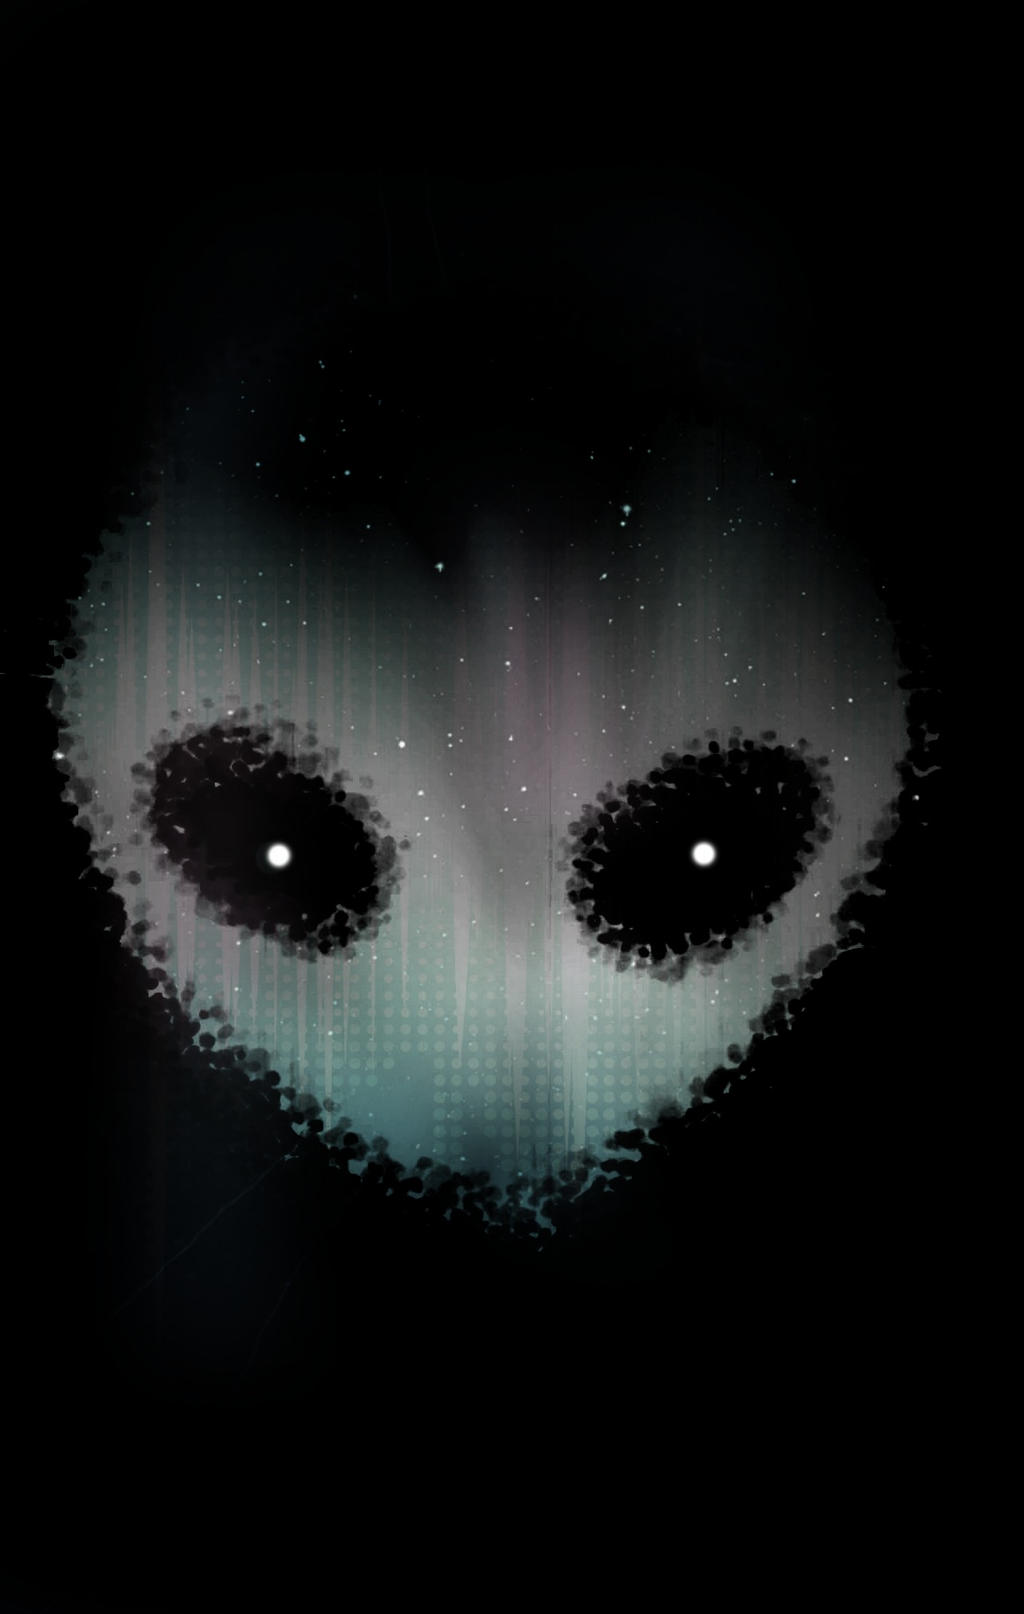 Wallpaper iphone monkey -  Alien Picmonkey Remix Cut For Iphone Wallpaper By Beckettgrice